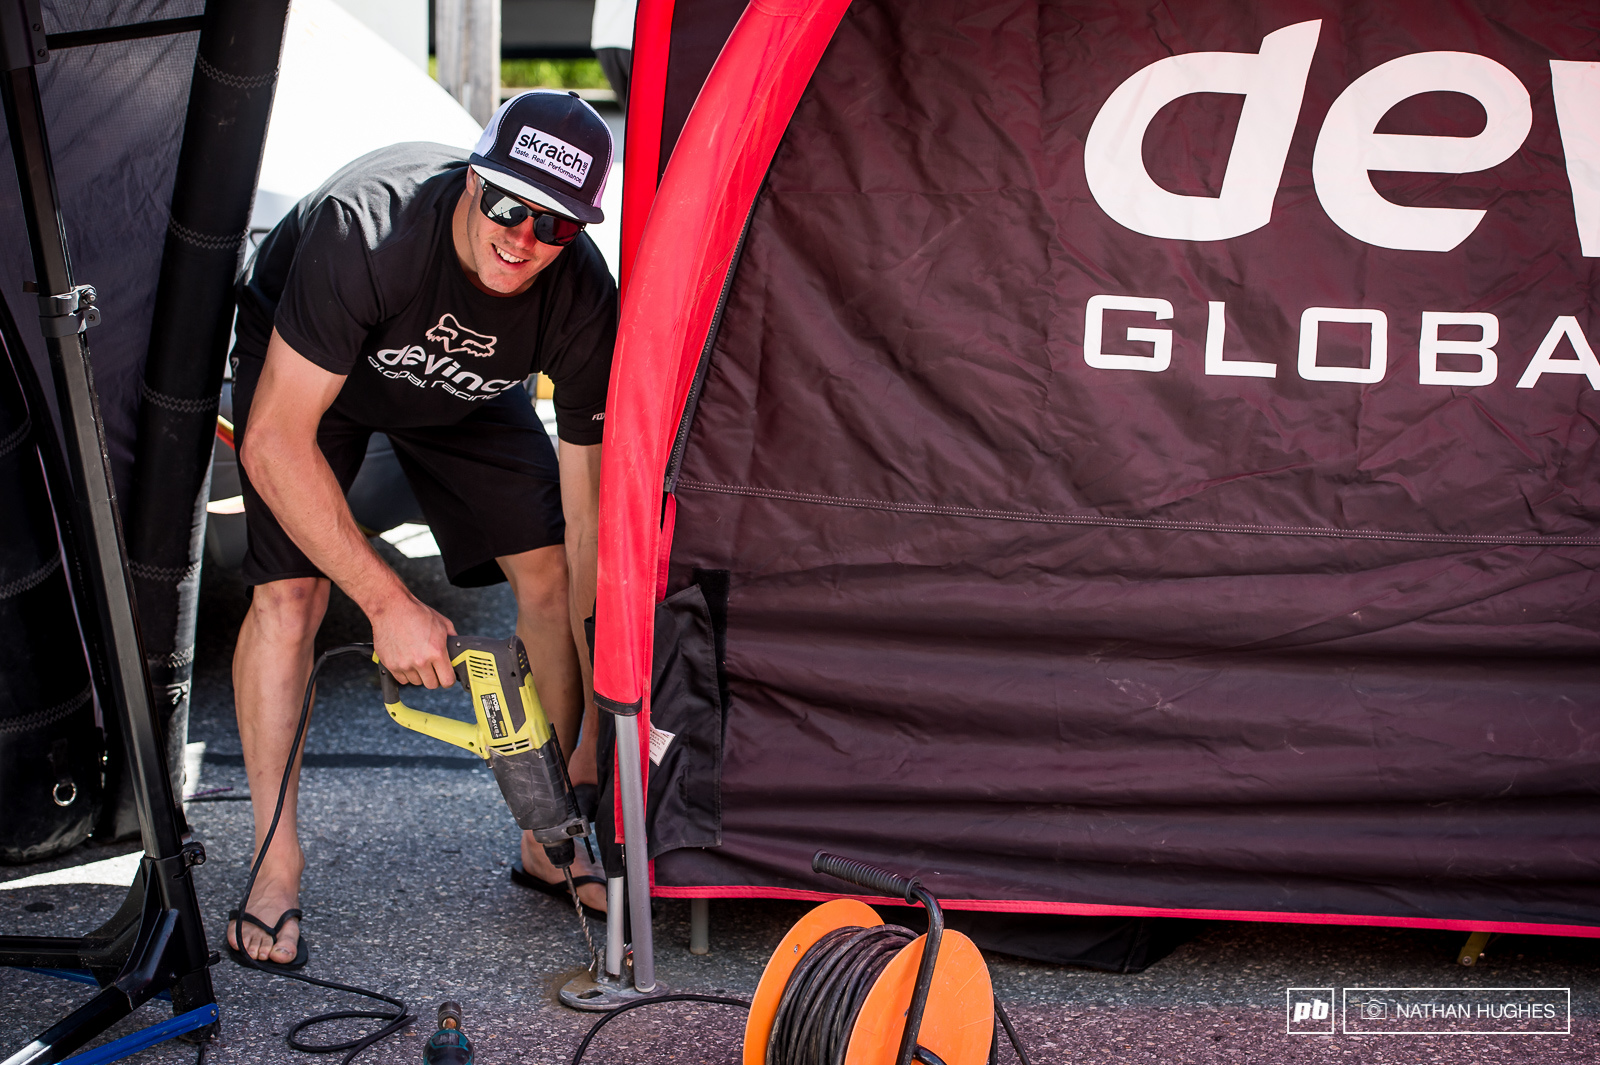 High-power drills and flip-flops... what could go wrong. Mark Wallace in it for the thrill.